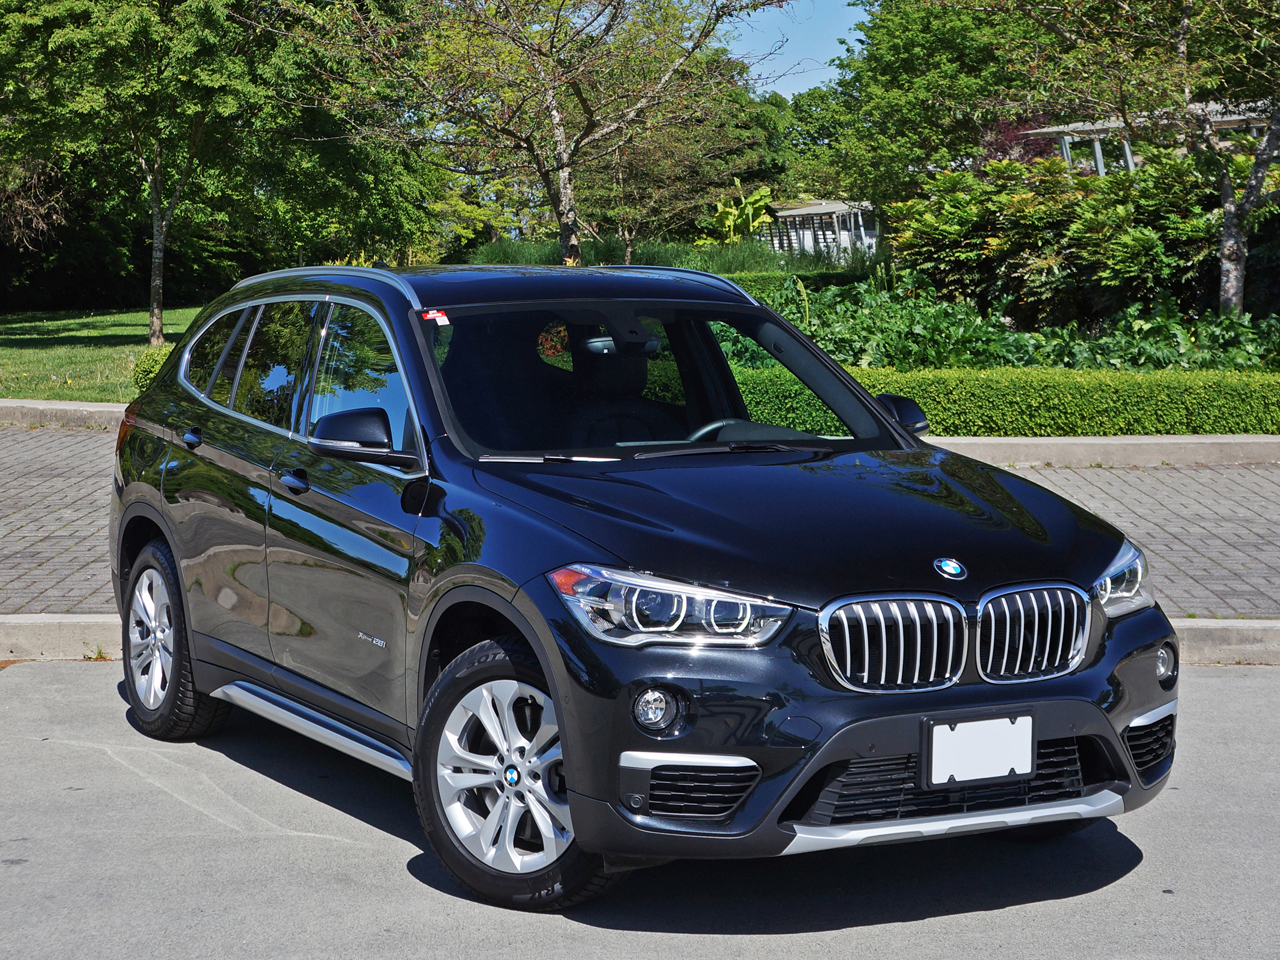 2016 bmw x1 xdrive28i road test review carcostcanada. Black Bedroom Furniture Sets. Home Design Ideas